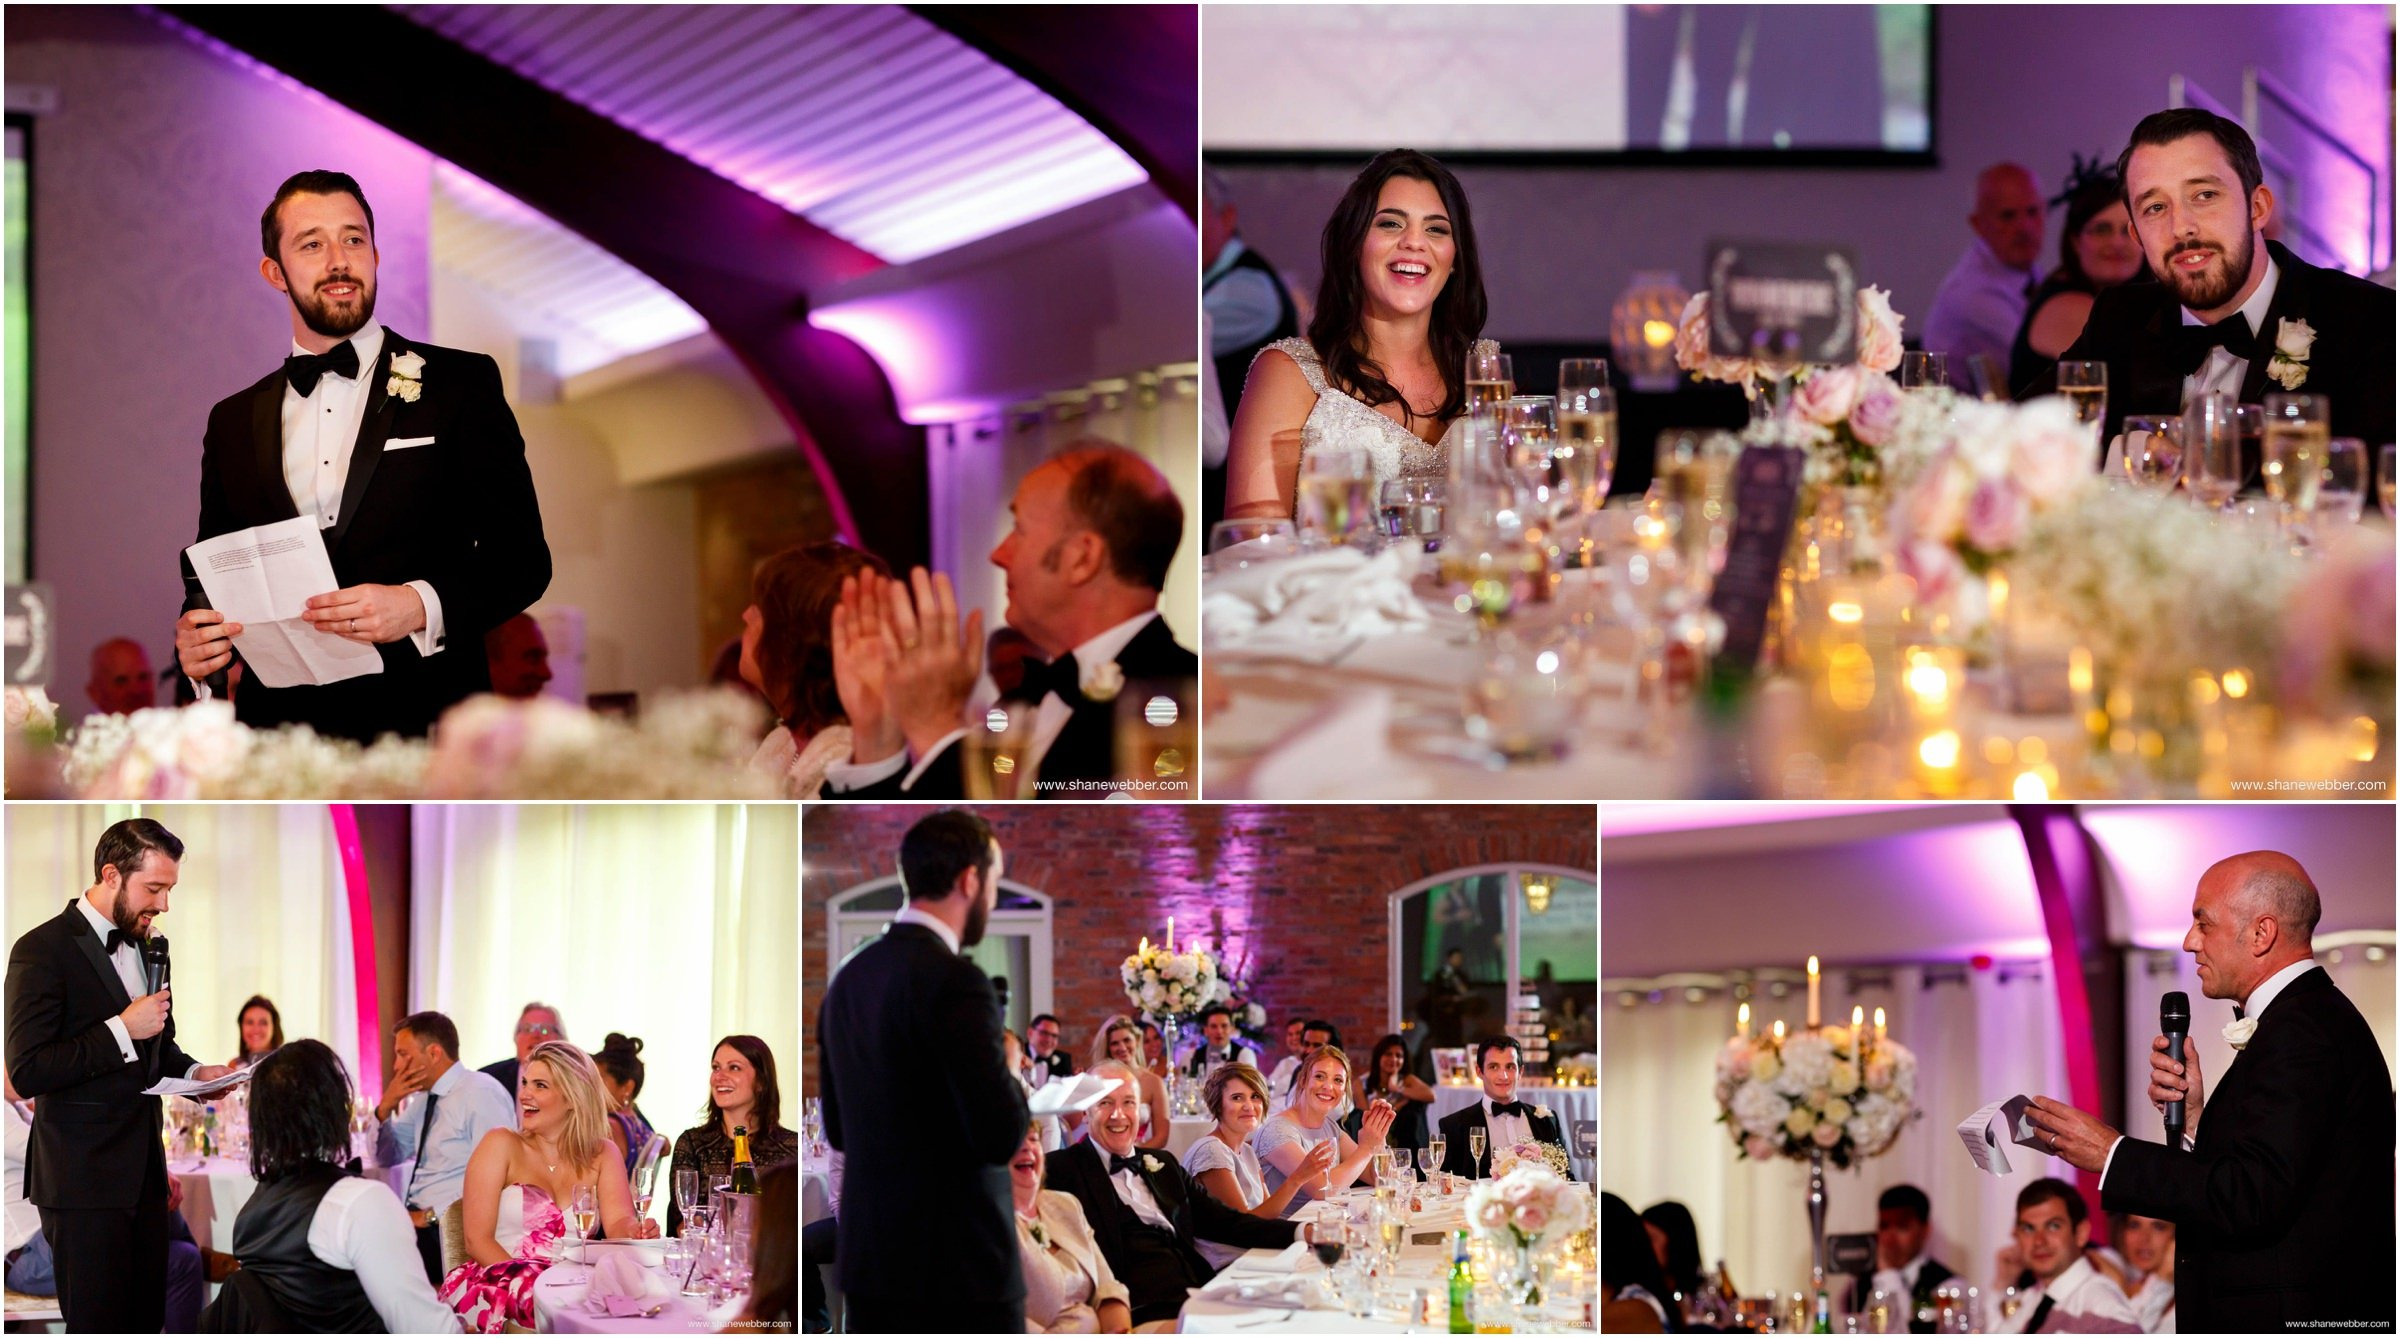 Photos of wedding speeches